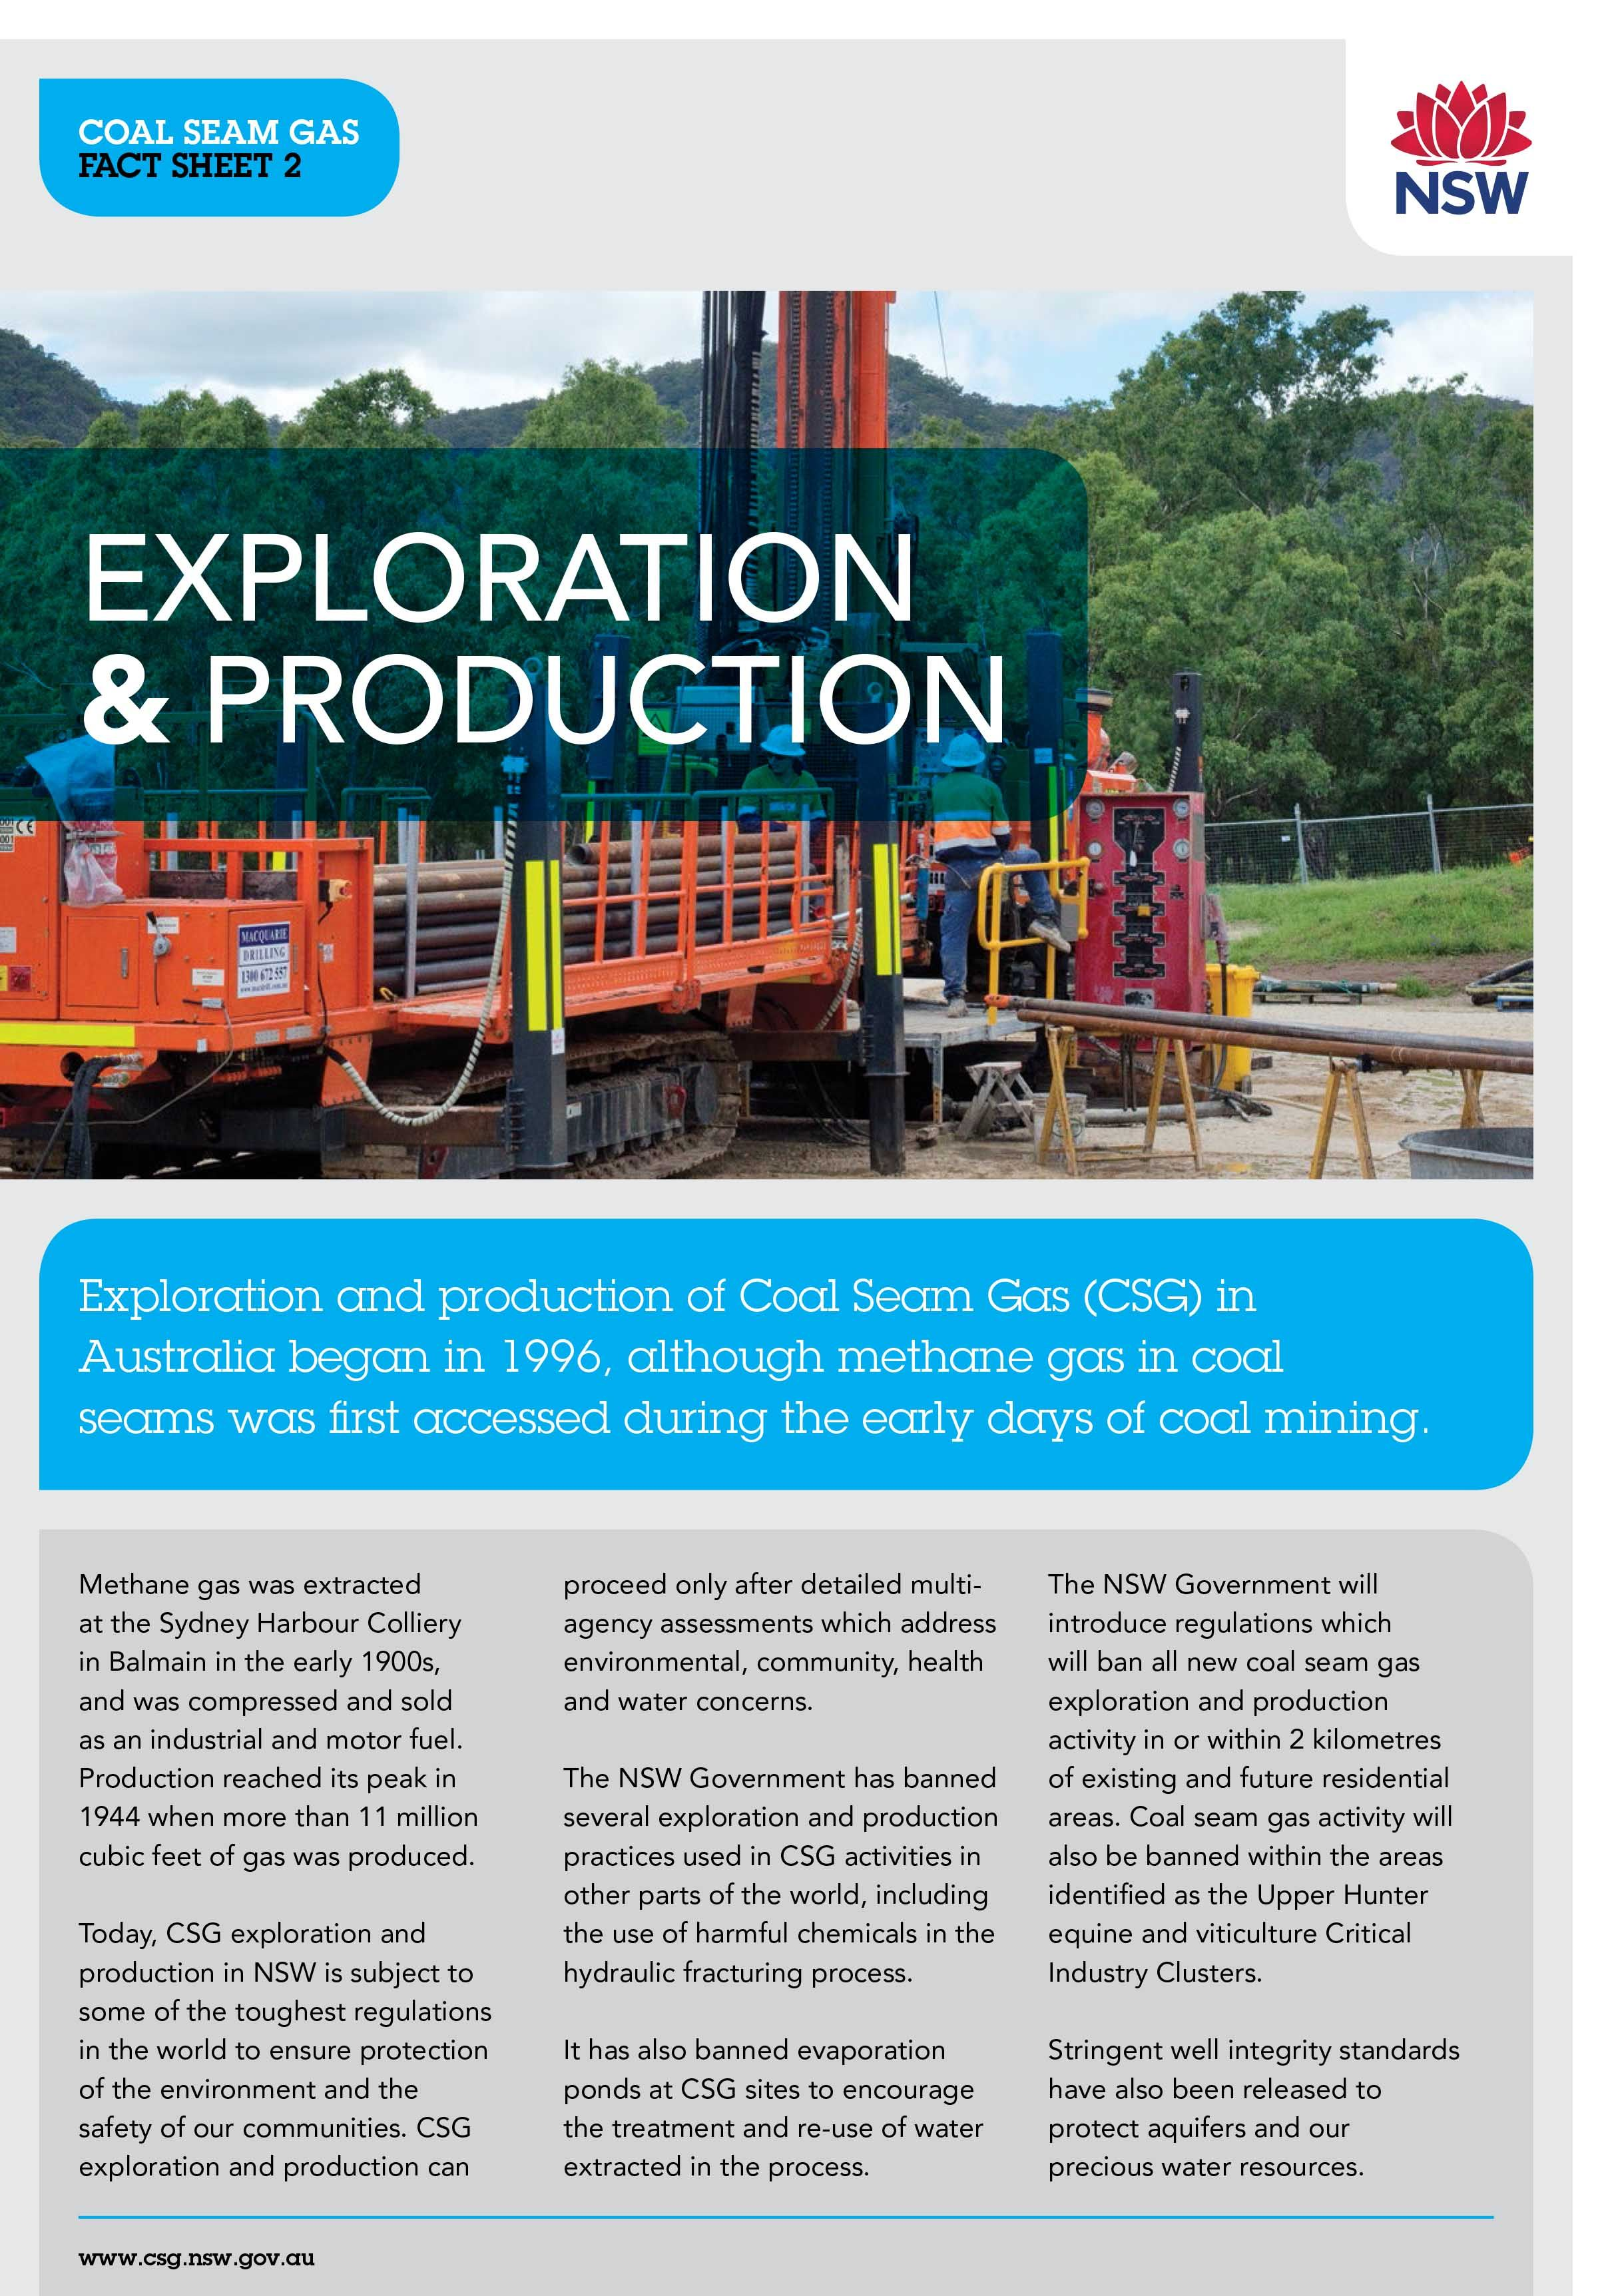 Coal Seam Gas (CSG) exploration and production in NSW is